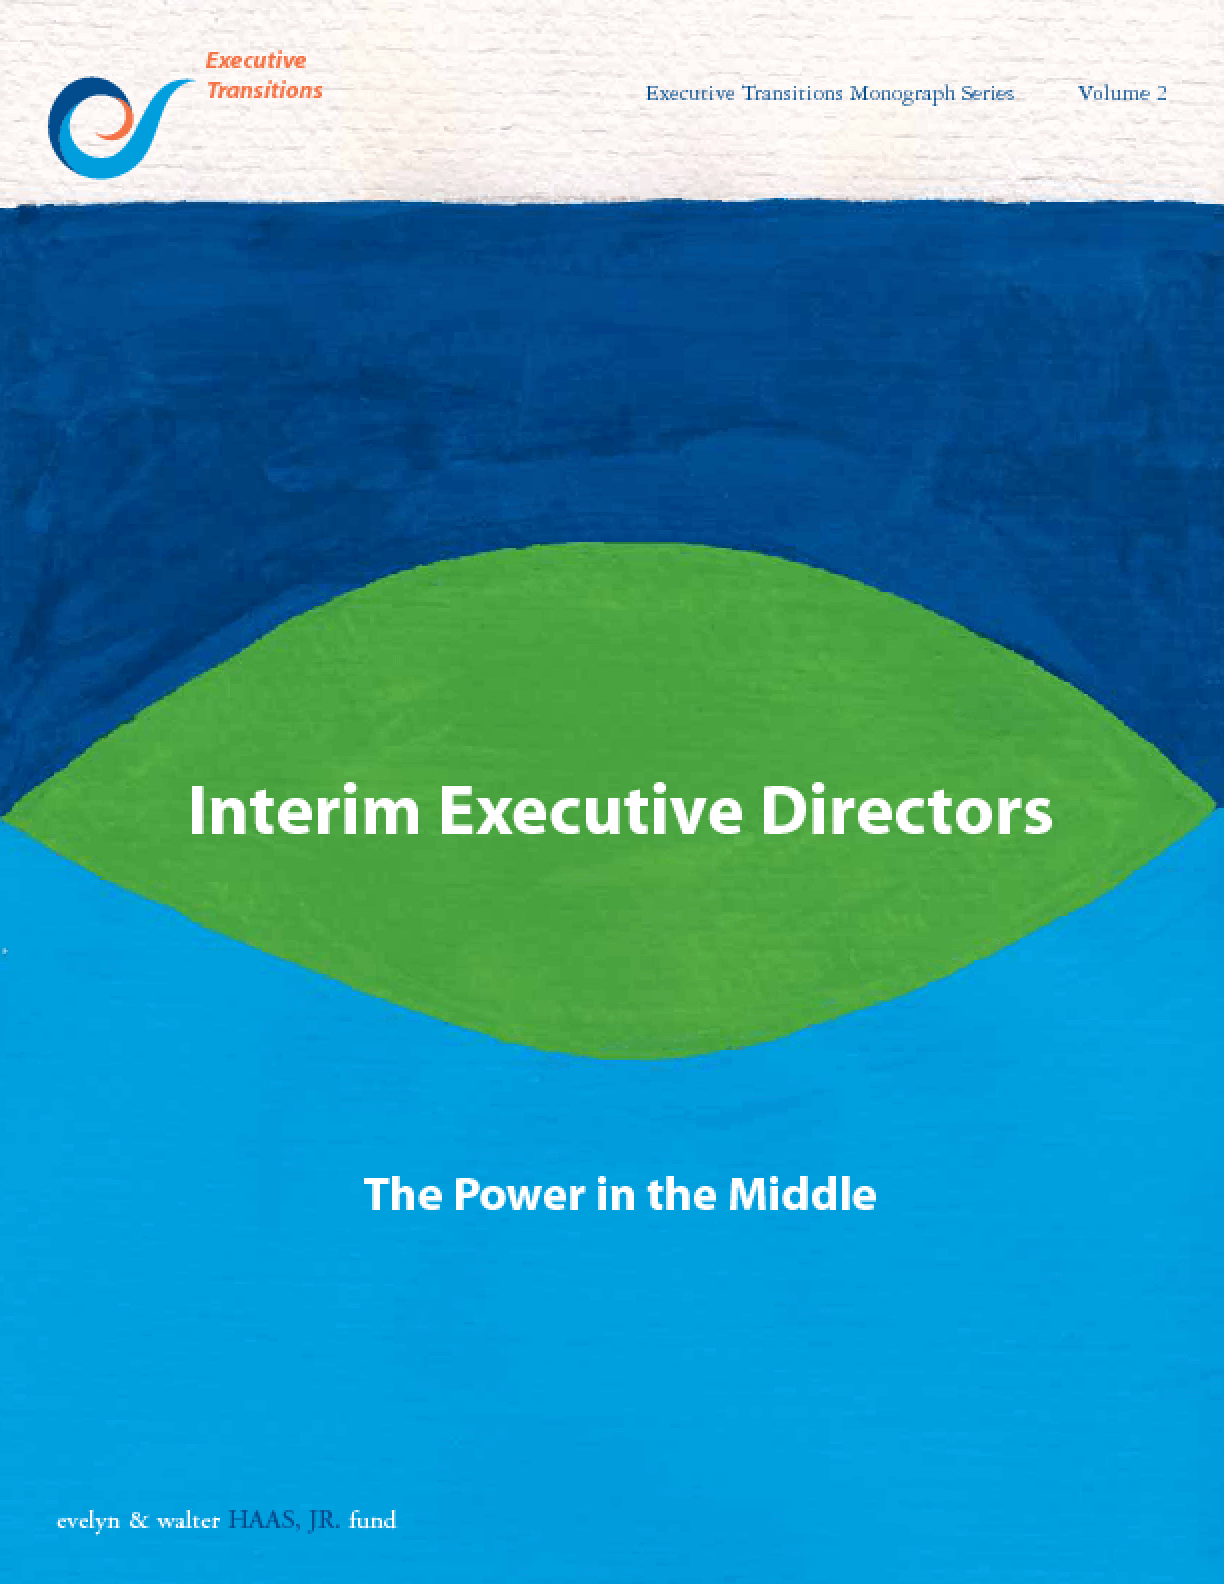 Interim Executive Directors: The Power in the Middle